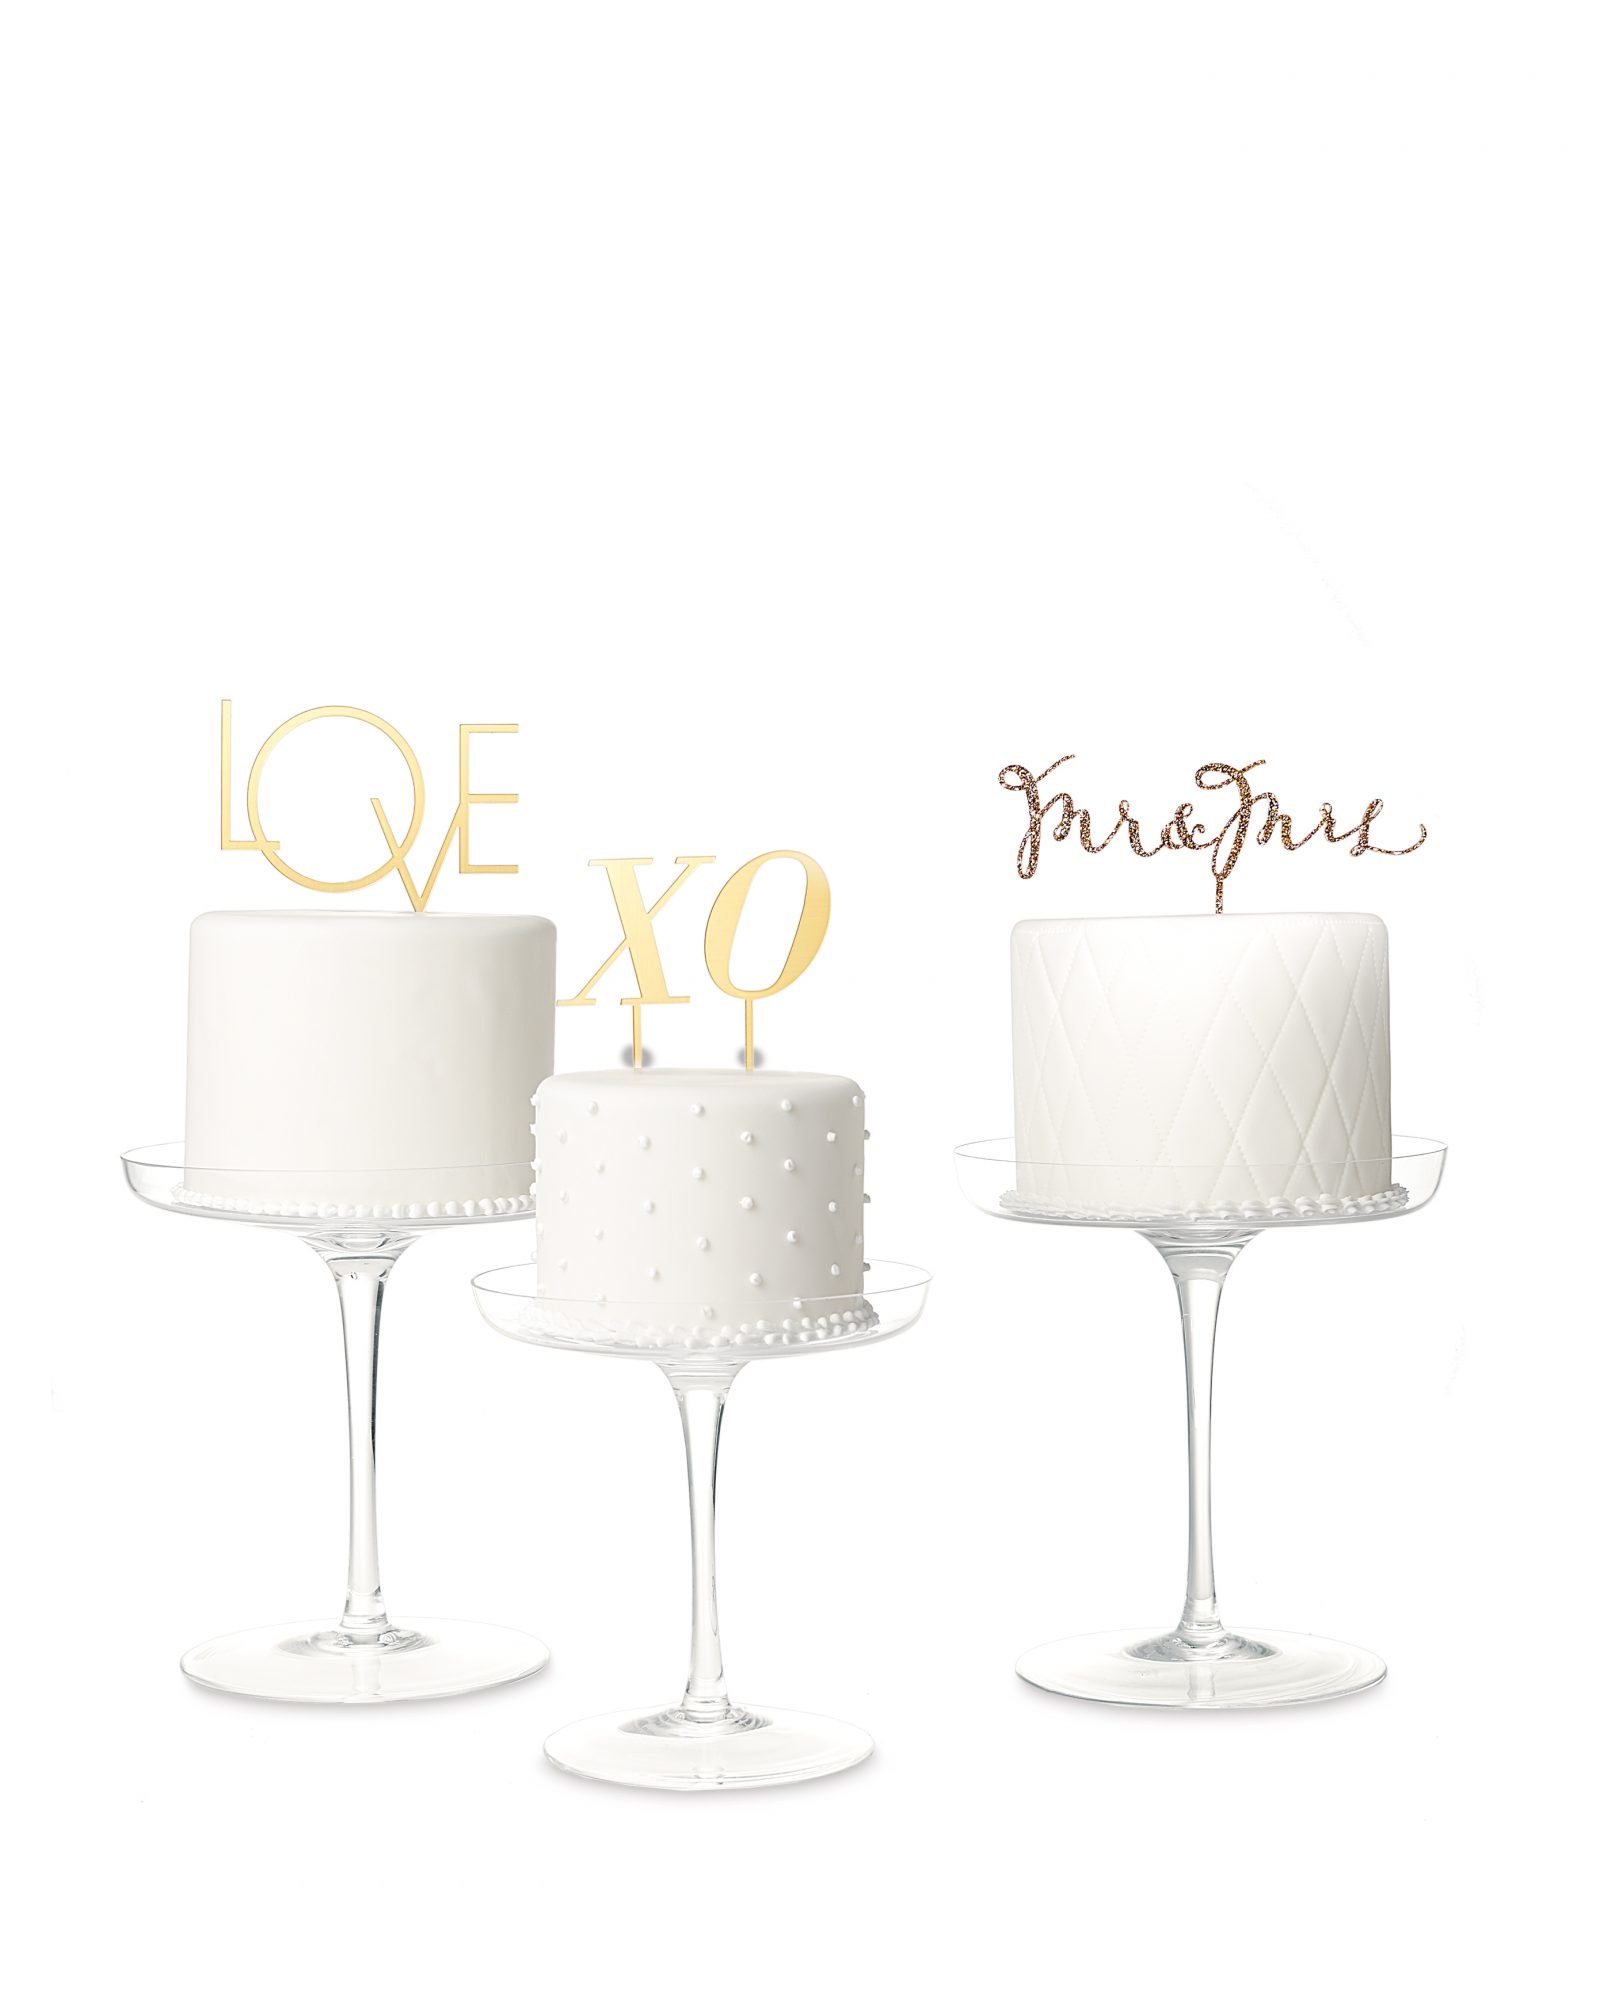 cakes-mr-and-mrs-098-comp-mwd110841.jpg